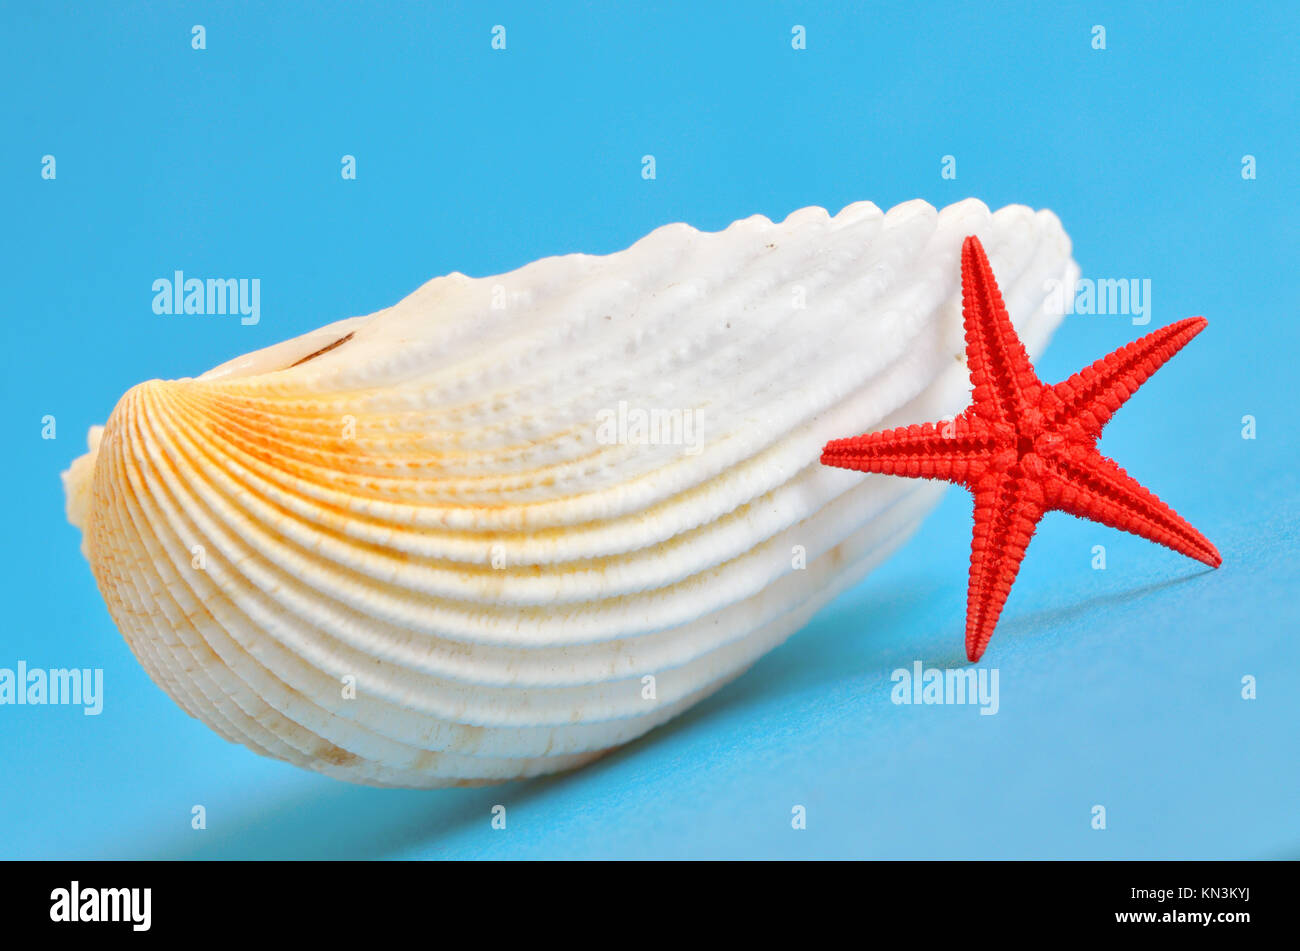 629a4a9c03 seashell and red starfish on blue background